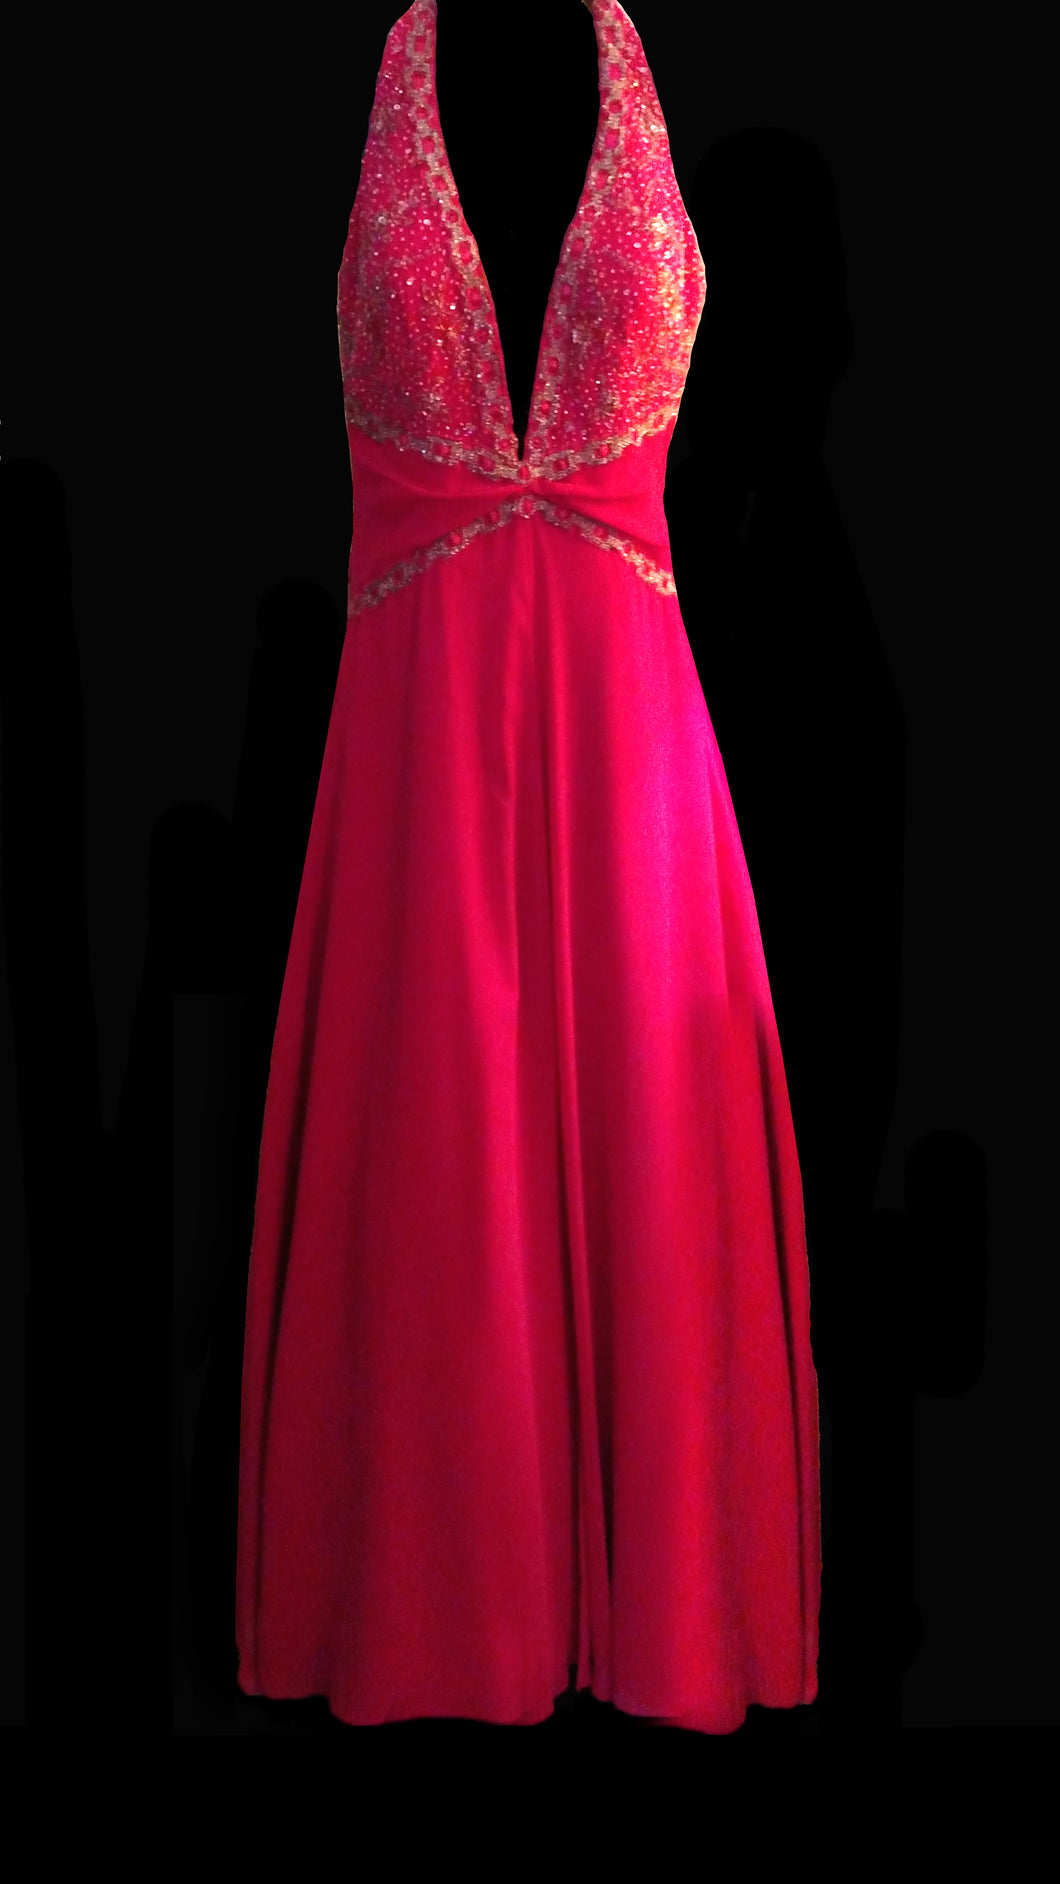 MD Consignment Anna Scott Designs Pink Embellished Gown